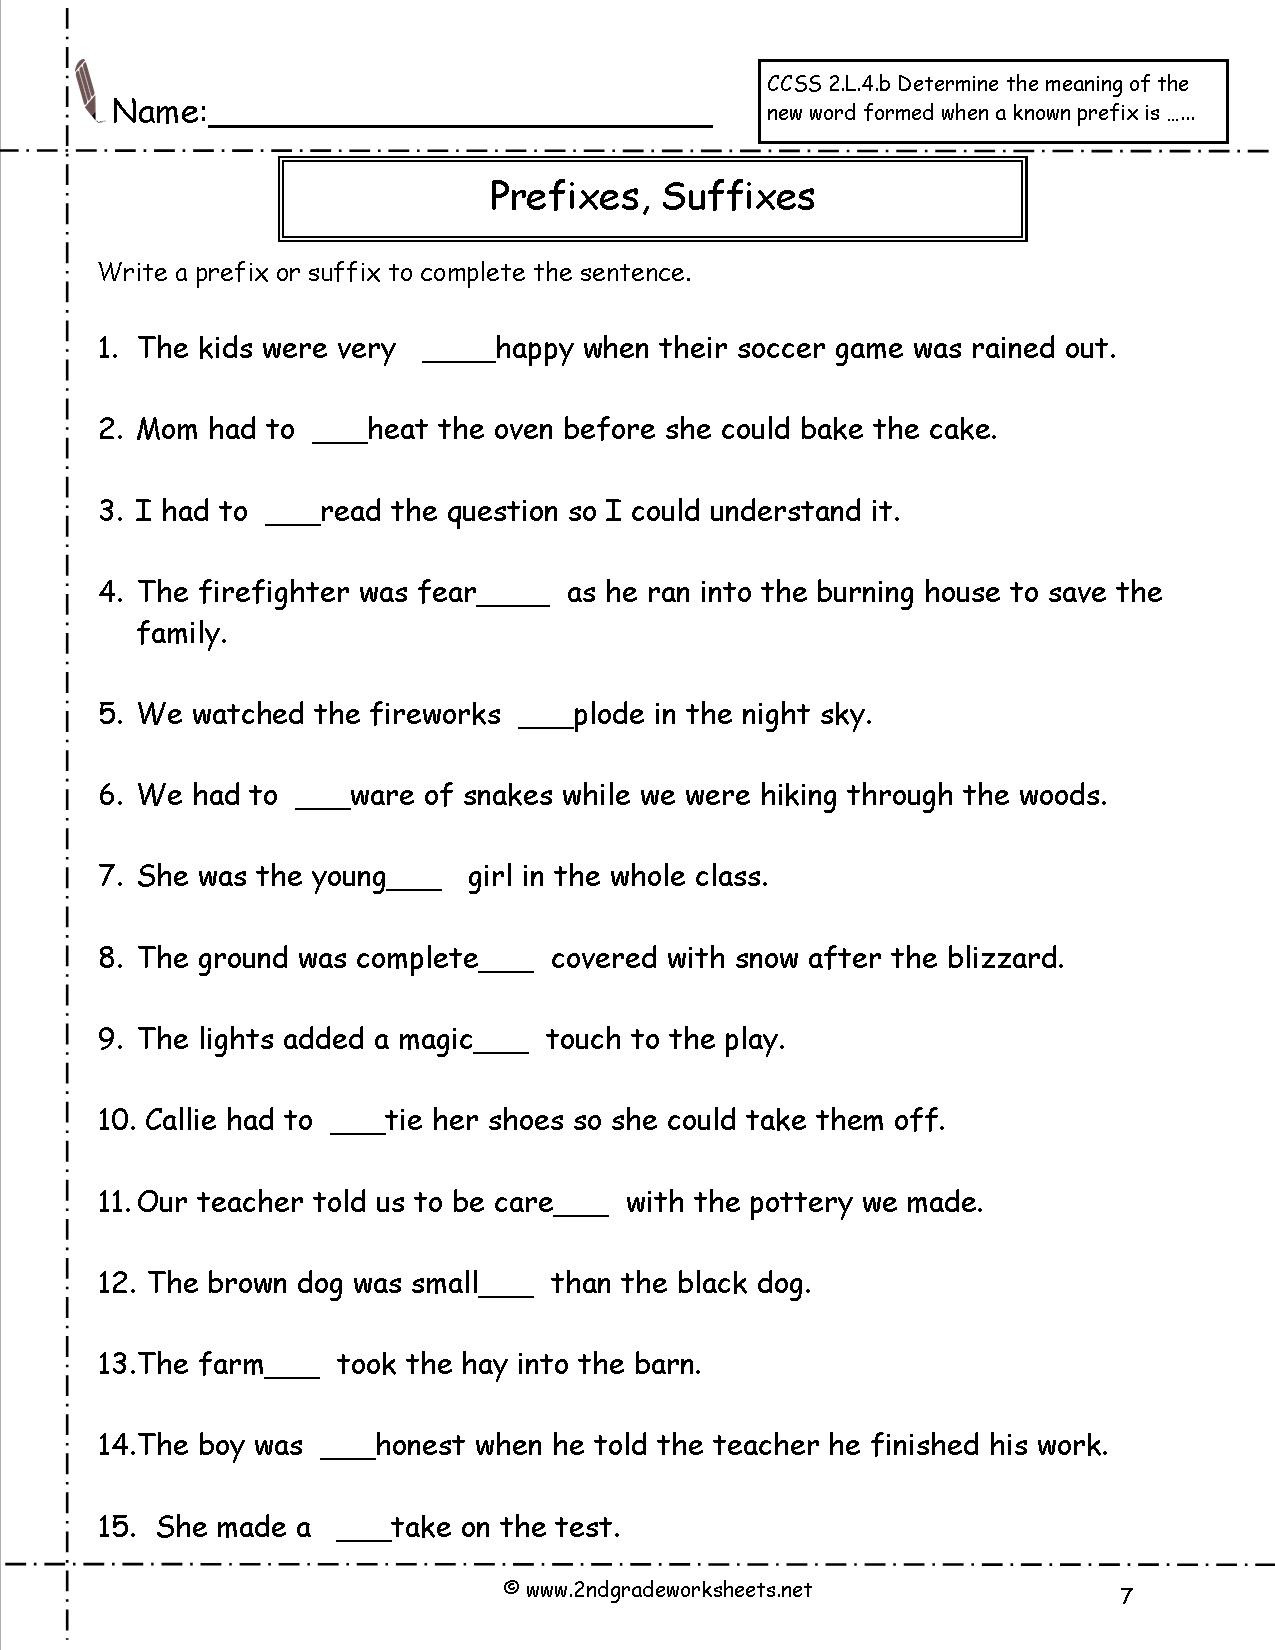 Prefix Suffix Worksheet 3rd Grade Second Grade Prefixes Worksheets